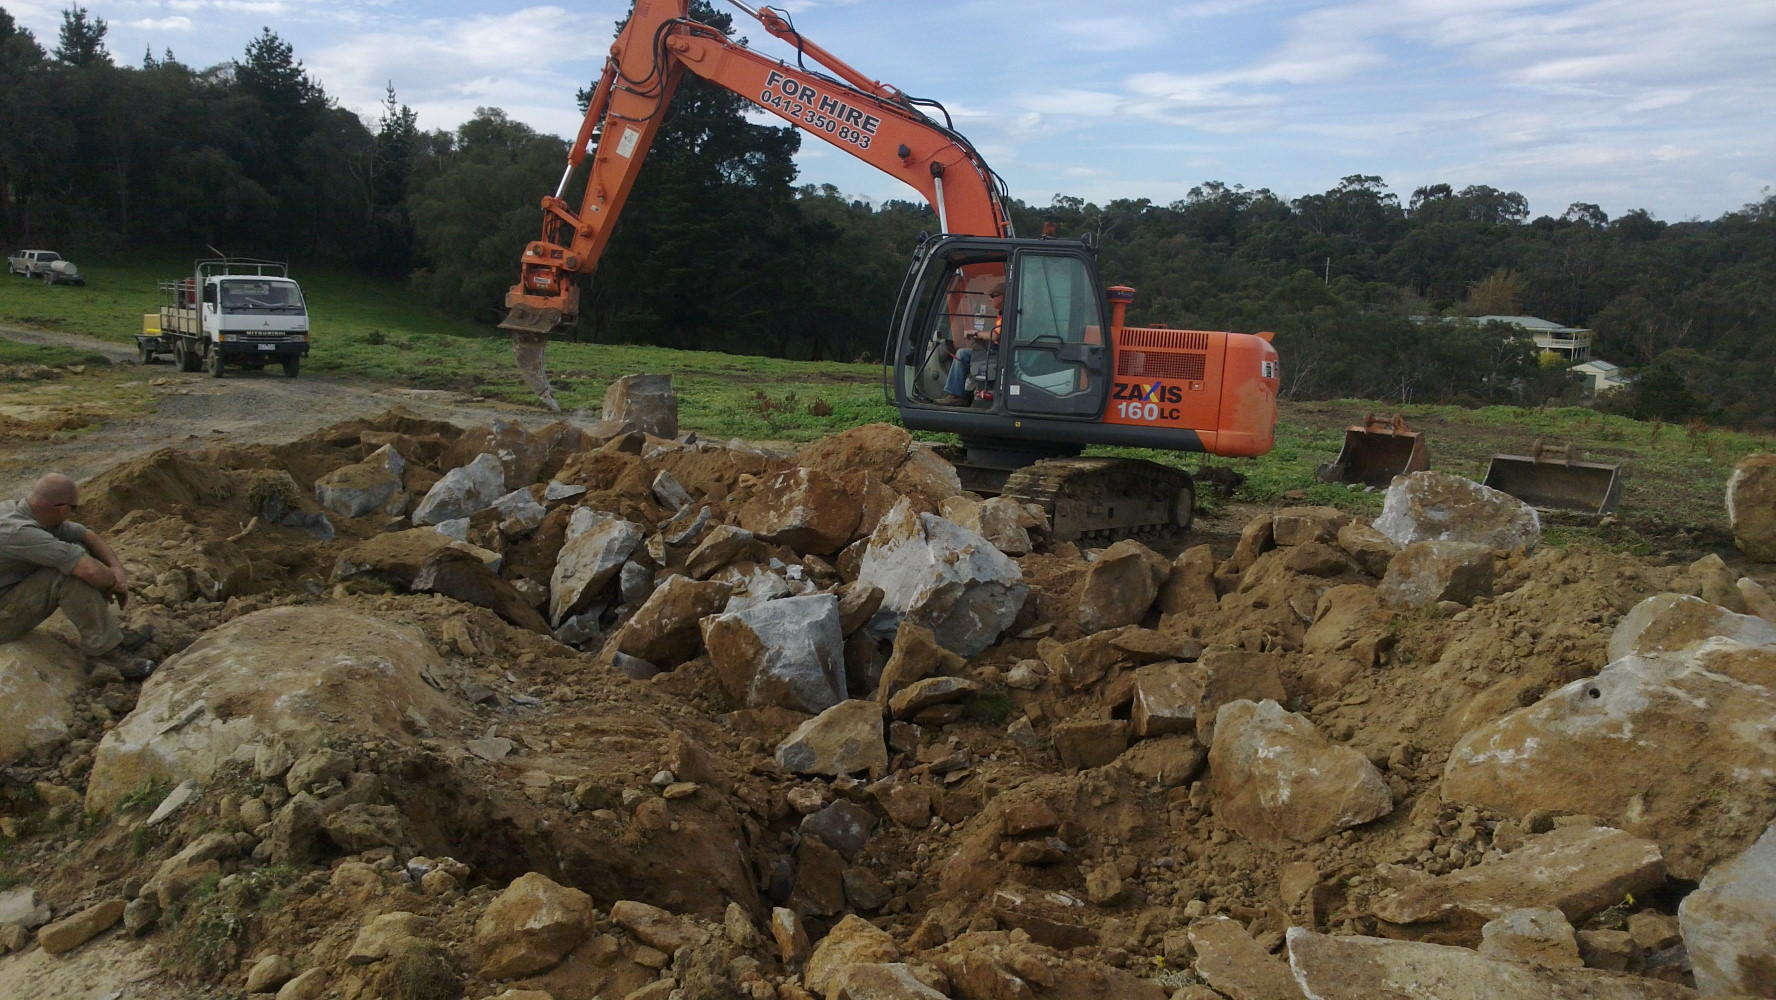 A site development project requiring extensive excavation, rock breaking, blasting and material removal